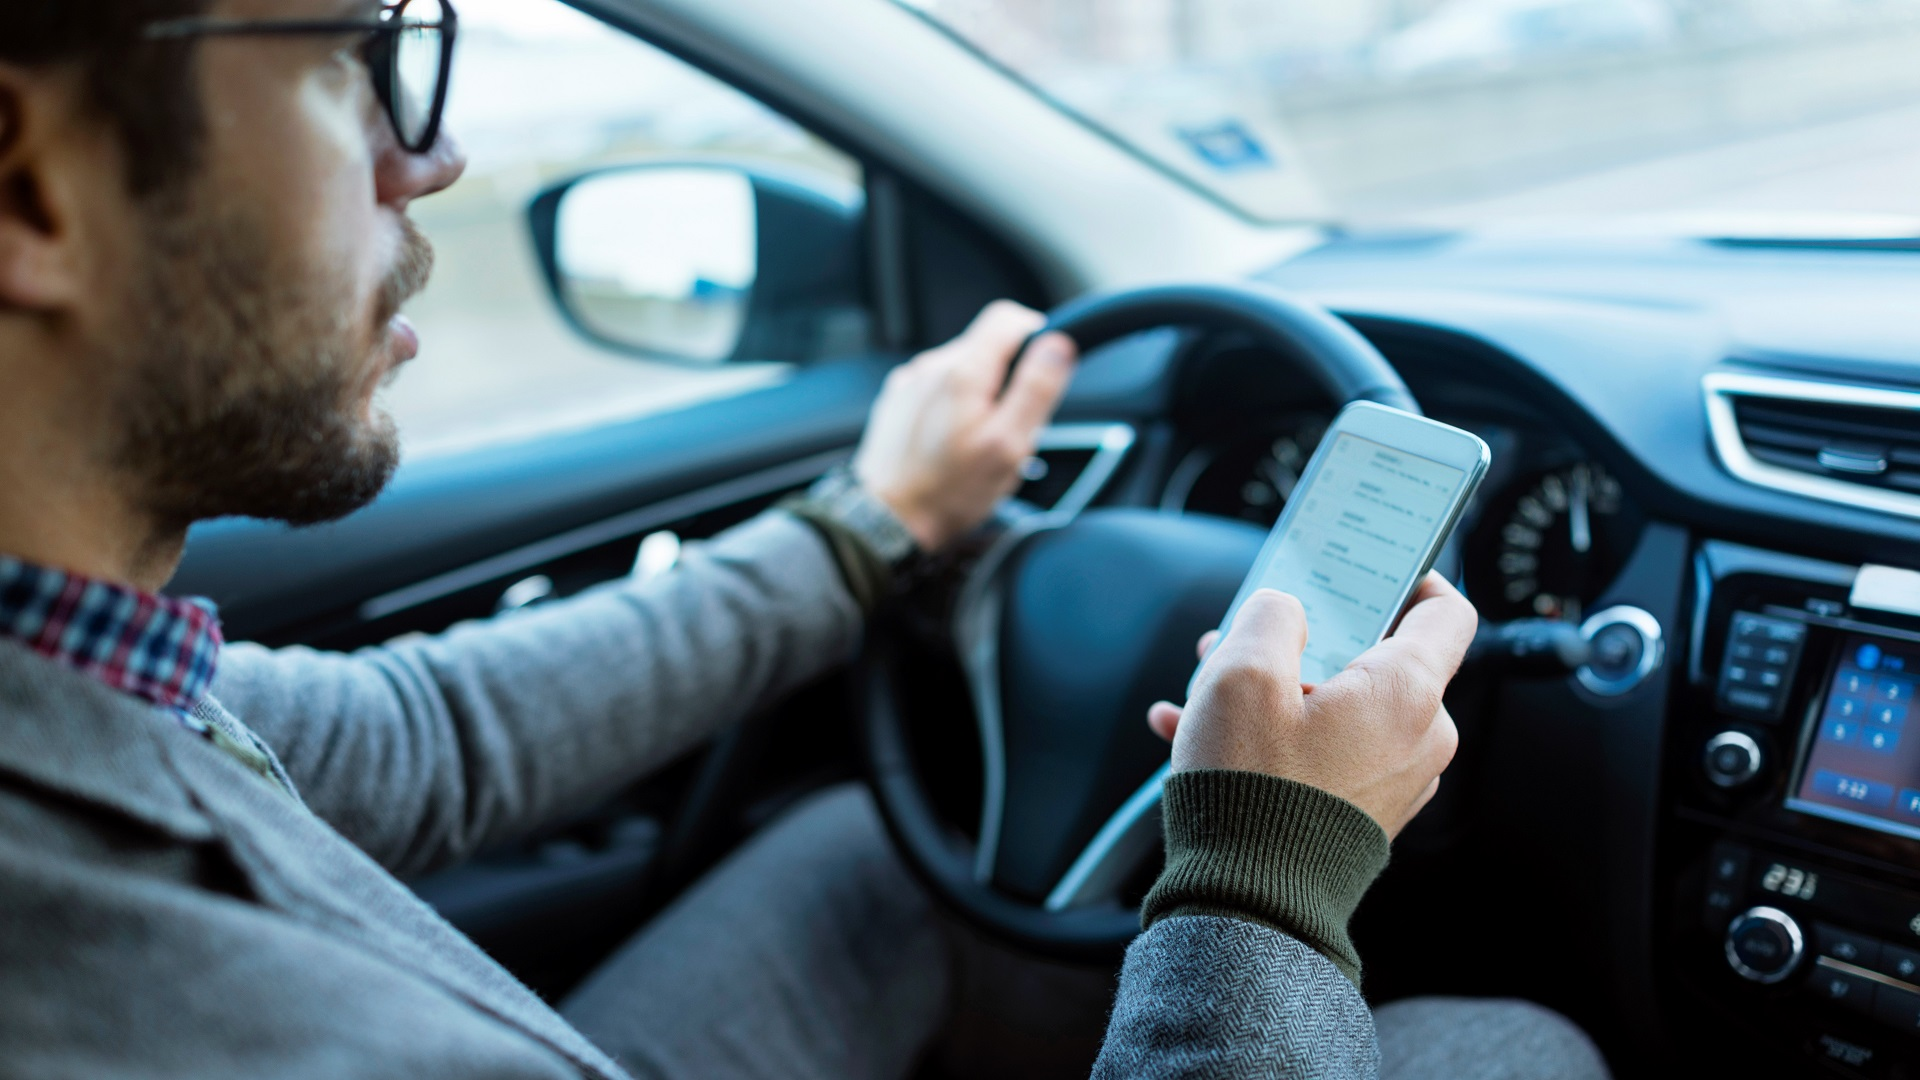 blocker apps_smartphone usage_driving and texting